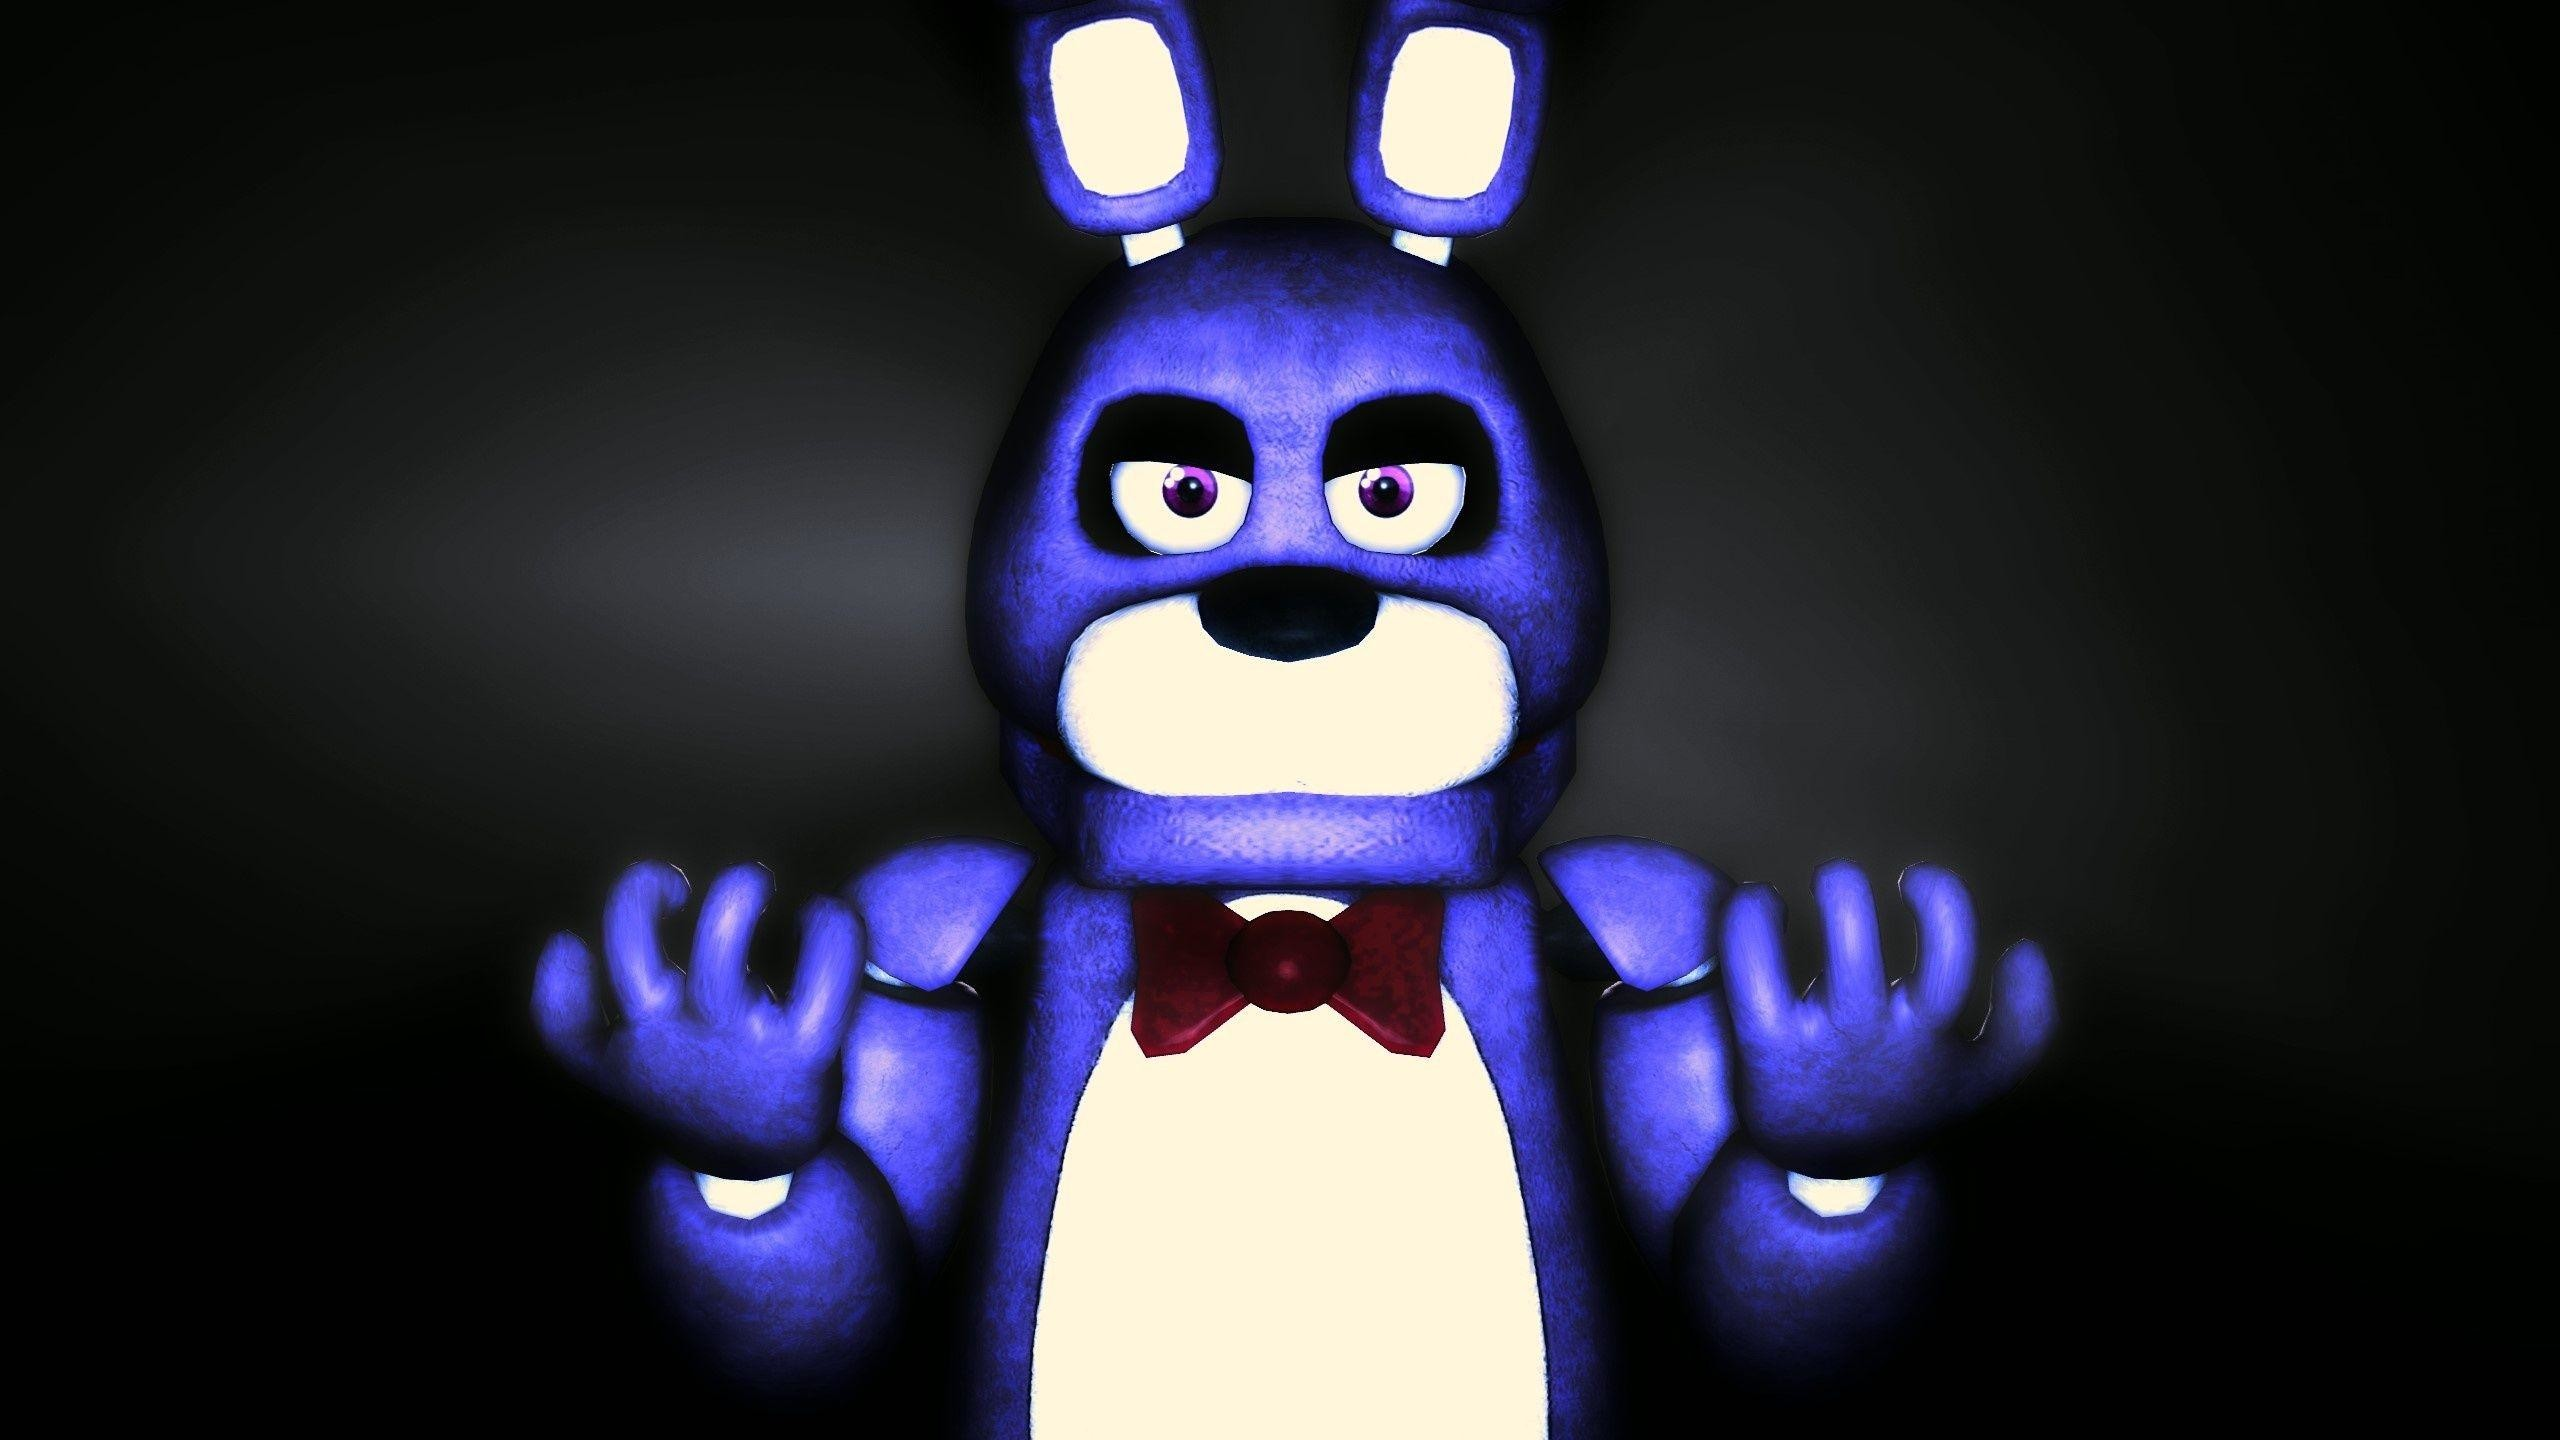 2048 Fnaf Fnaf Wallpaper Bonnie 91 Images